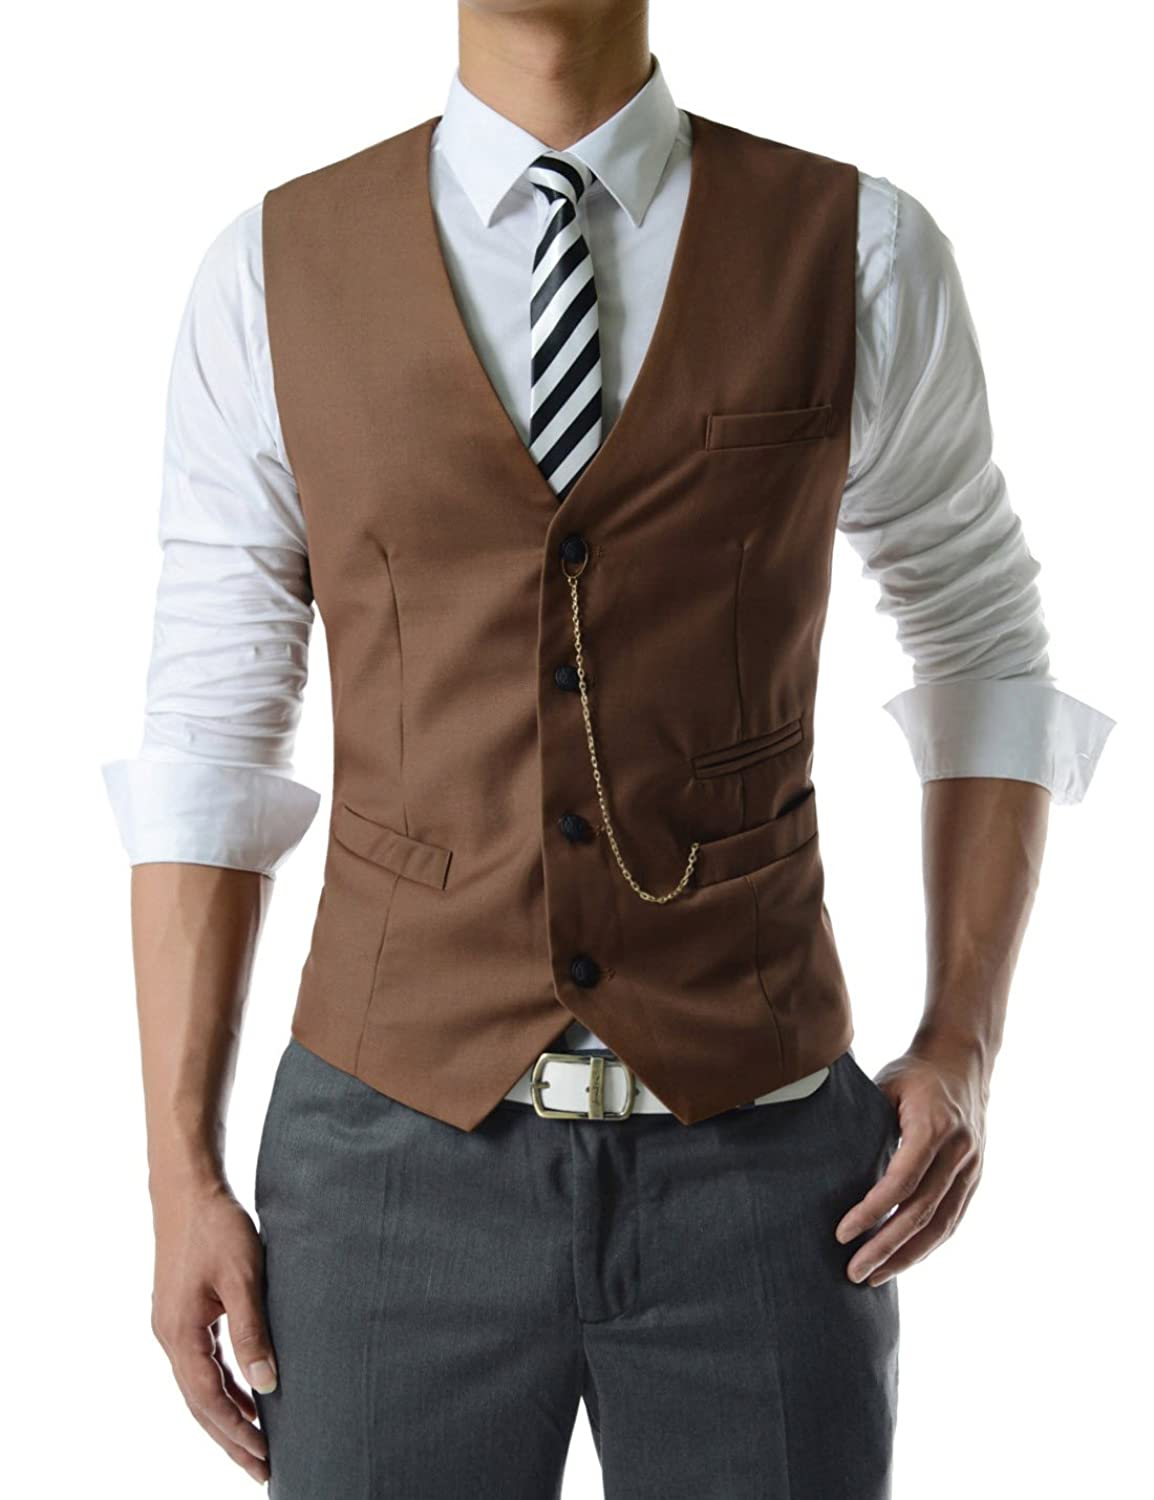 Retro Clothing for Men | Vintage Men's Fashion SVE TheLees Mens slim fit chain point 3 button vest $33.99 AT vintagedancer.com